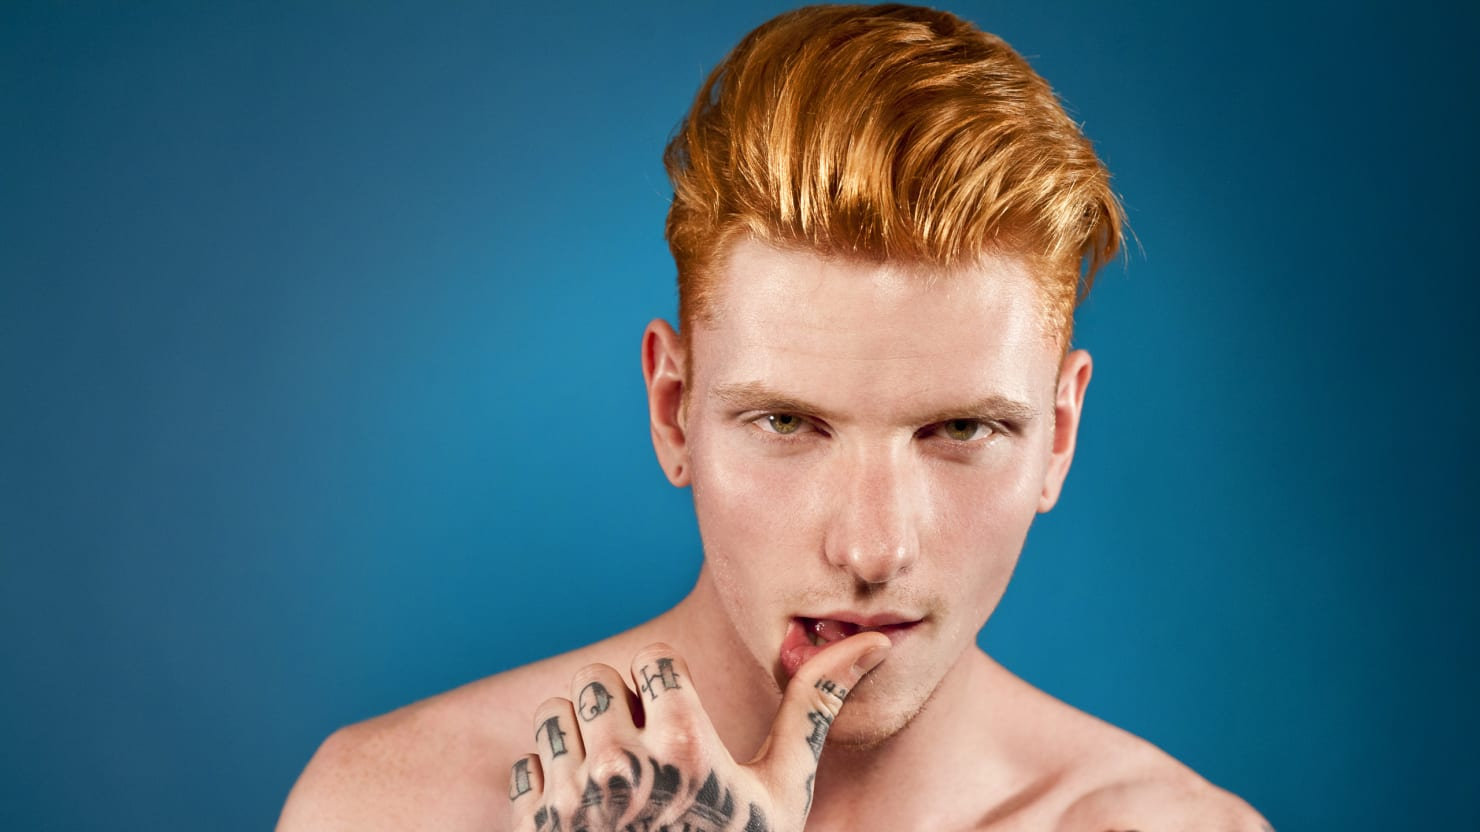 naked-red-headed-men-photos